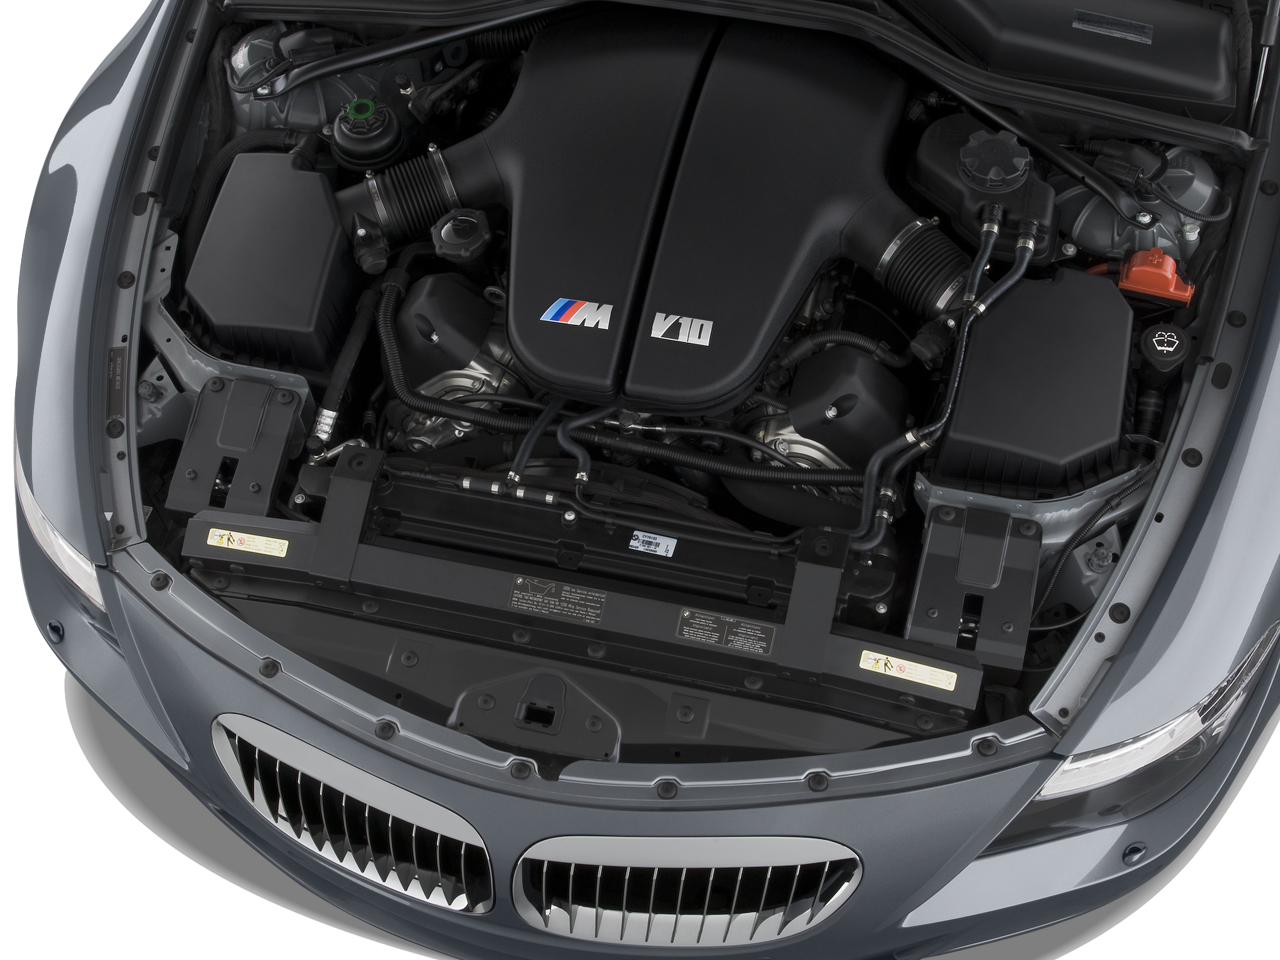 2008 bmw 6 series facelift latest news features and model rh automobilemag com